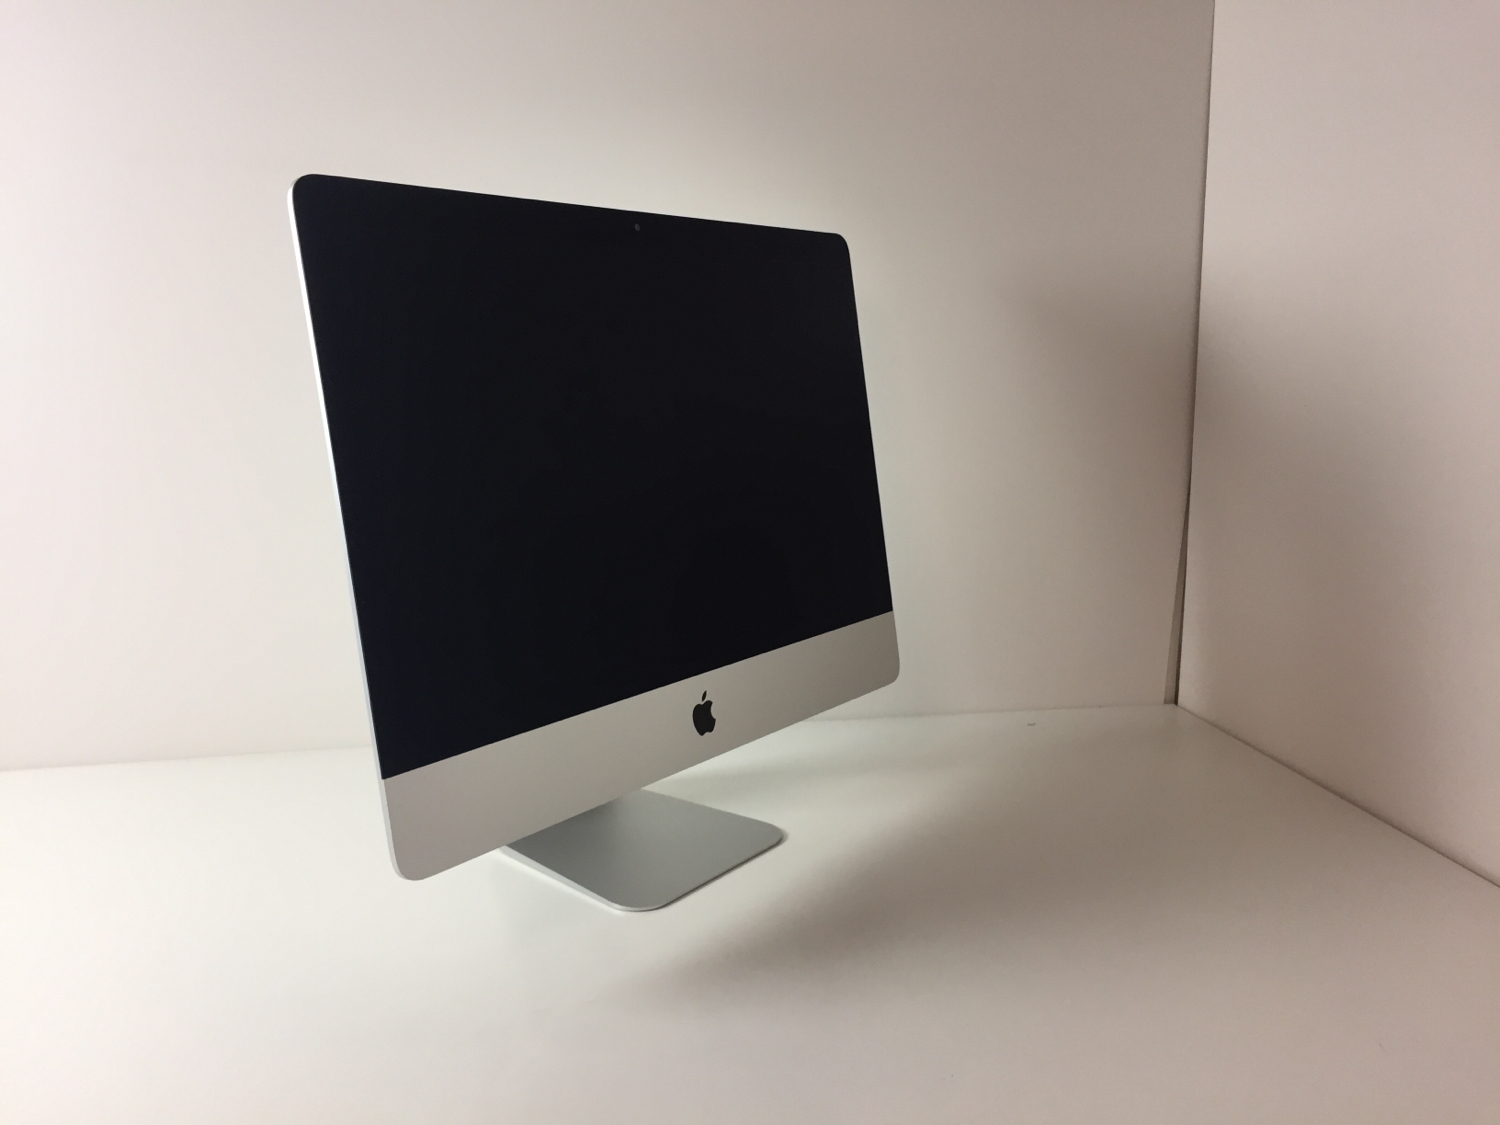 "iMac 21.5"" Late 2013 (Intel Quad-Core i5 2.7 GHz 8 GB RAM 1 TB HDD), Intel Quad-Core i5 2.7 GHz, 8 GB RAM, 1 TB HDD, Afbeelding 2"